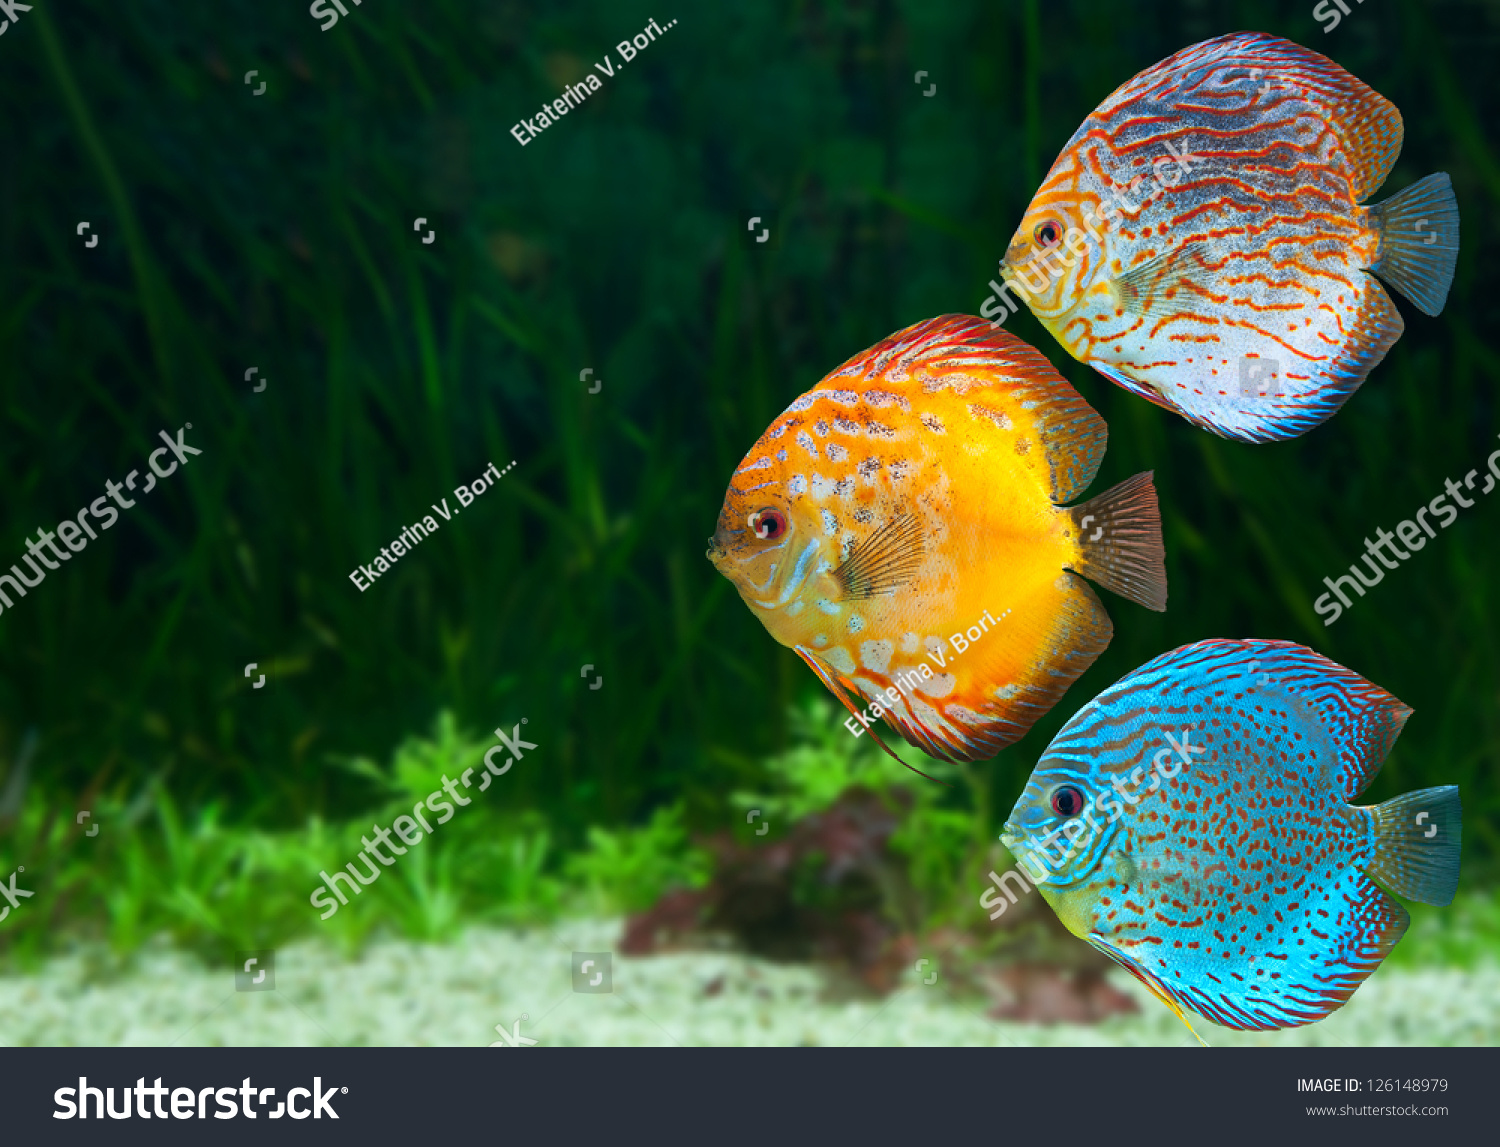 Freshwater fish amazon - Three Bright Discus Freshwater Fish Native To The Amazon River In Aquarium